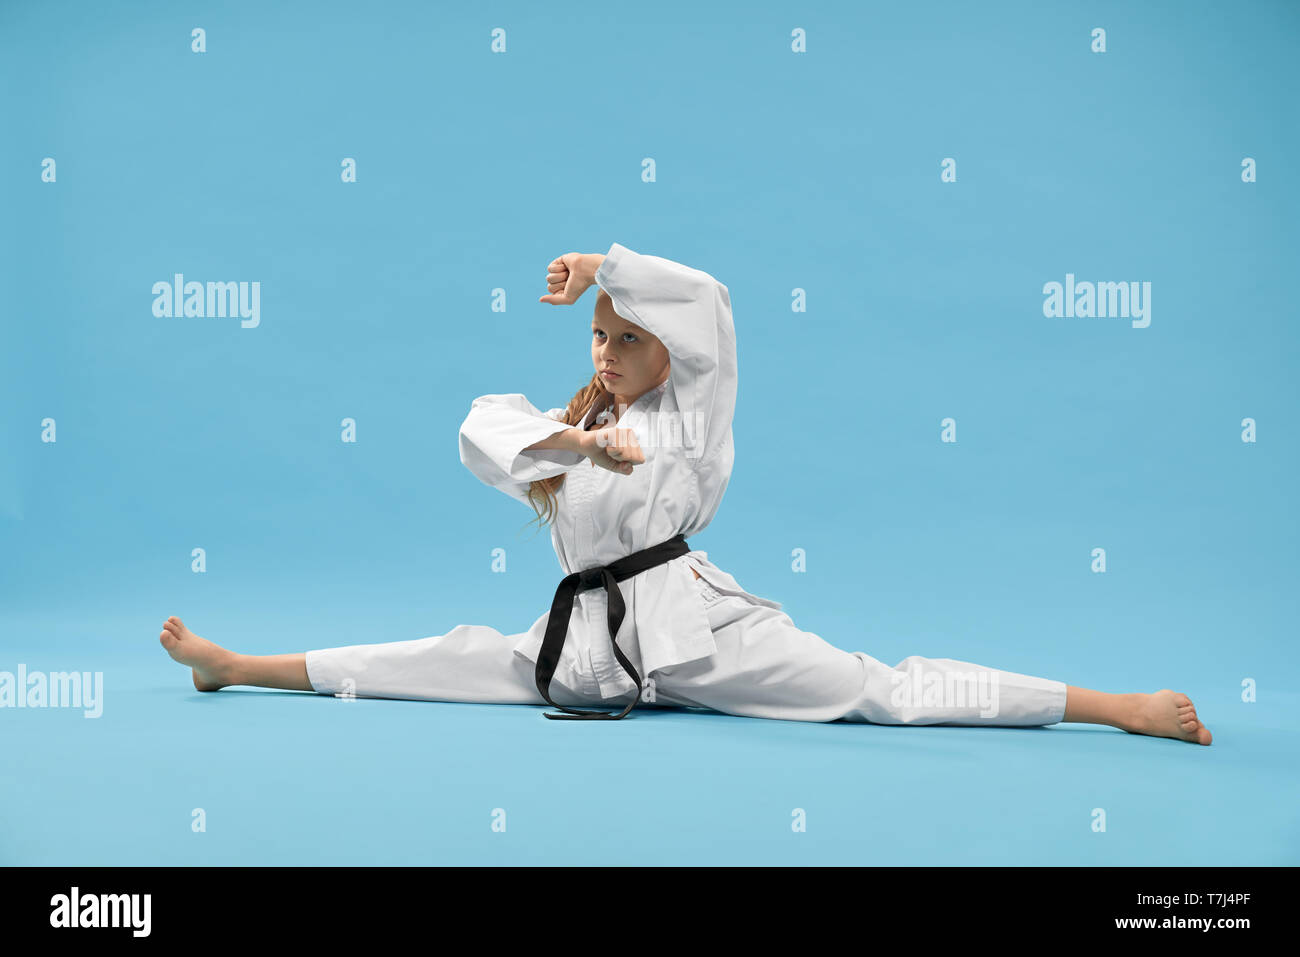 Karate Girl High Resolution Stock Photography And Images Alamy